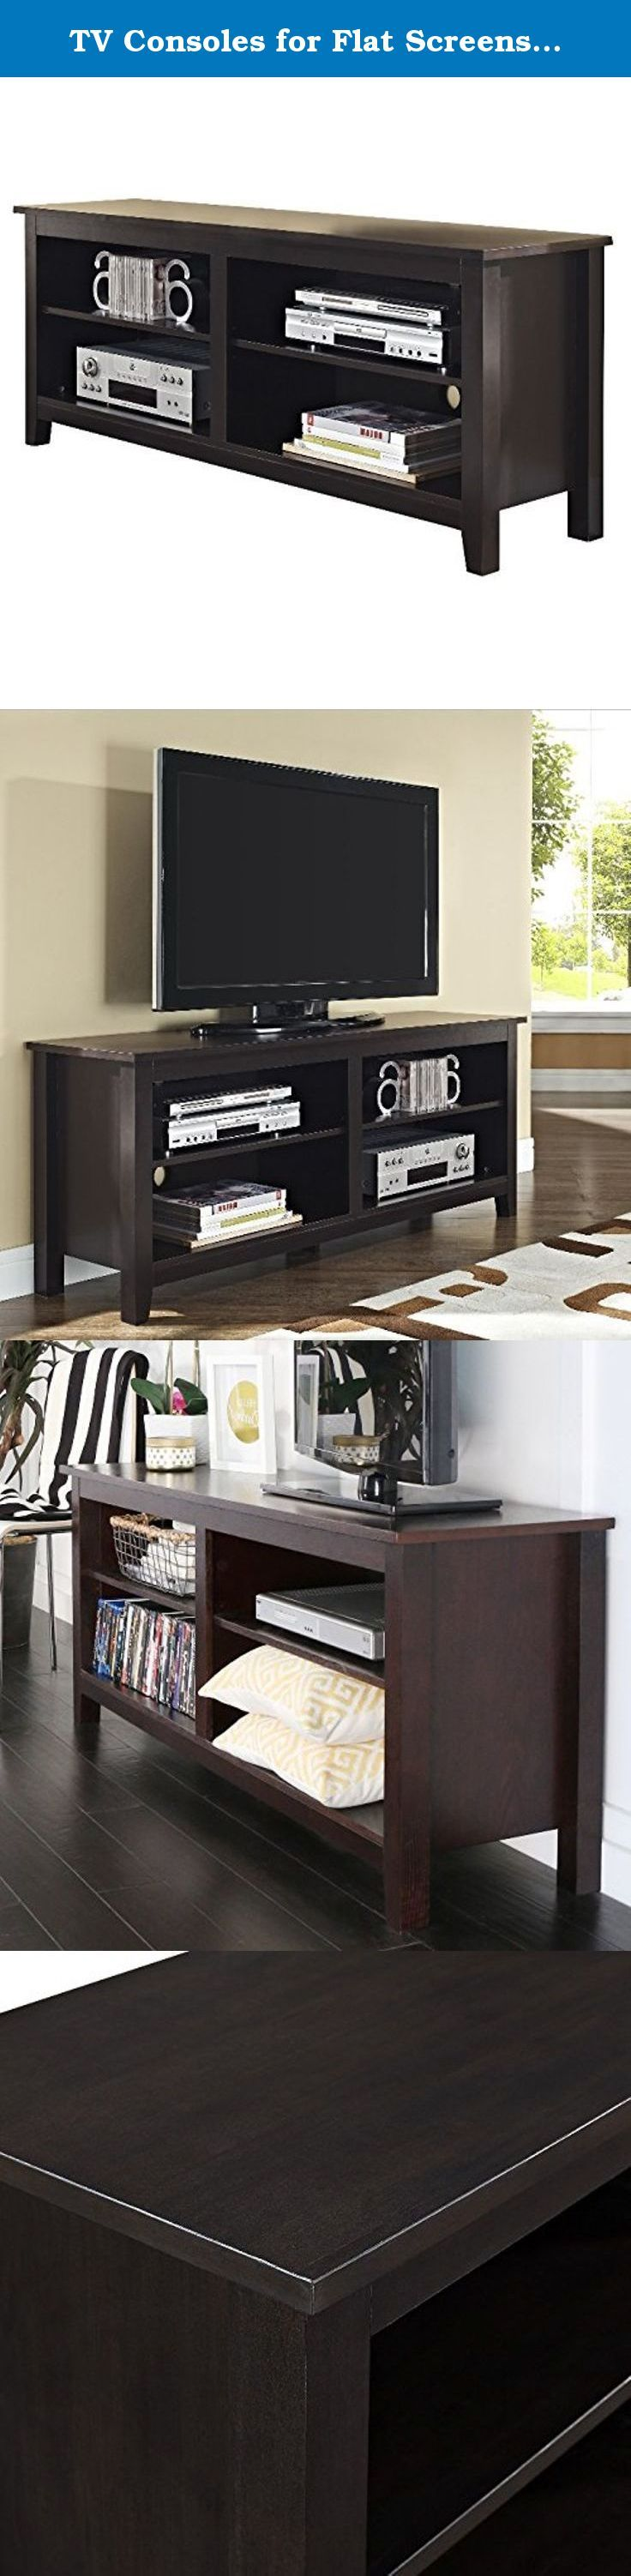 TV Consoles for Flat Screens 60 Inch Entertainment Center - Media Stand Furniture 4 Storage Shelves is Best for Flat Screen Televisions 46, 50, 55, 60 in Espresso Bundle w Anti-slip Accessory Pad. The TV console for flat screens 60 inch is perfect for accommodating home televisions from 46 inches up to 55 and 60, and all the media that goes with it! Complete with 4 large storage compartments for your AV components and much more! TV console furniture comes in a brown finish for a modern...